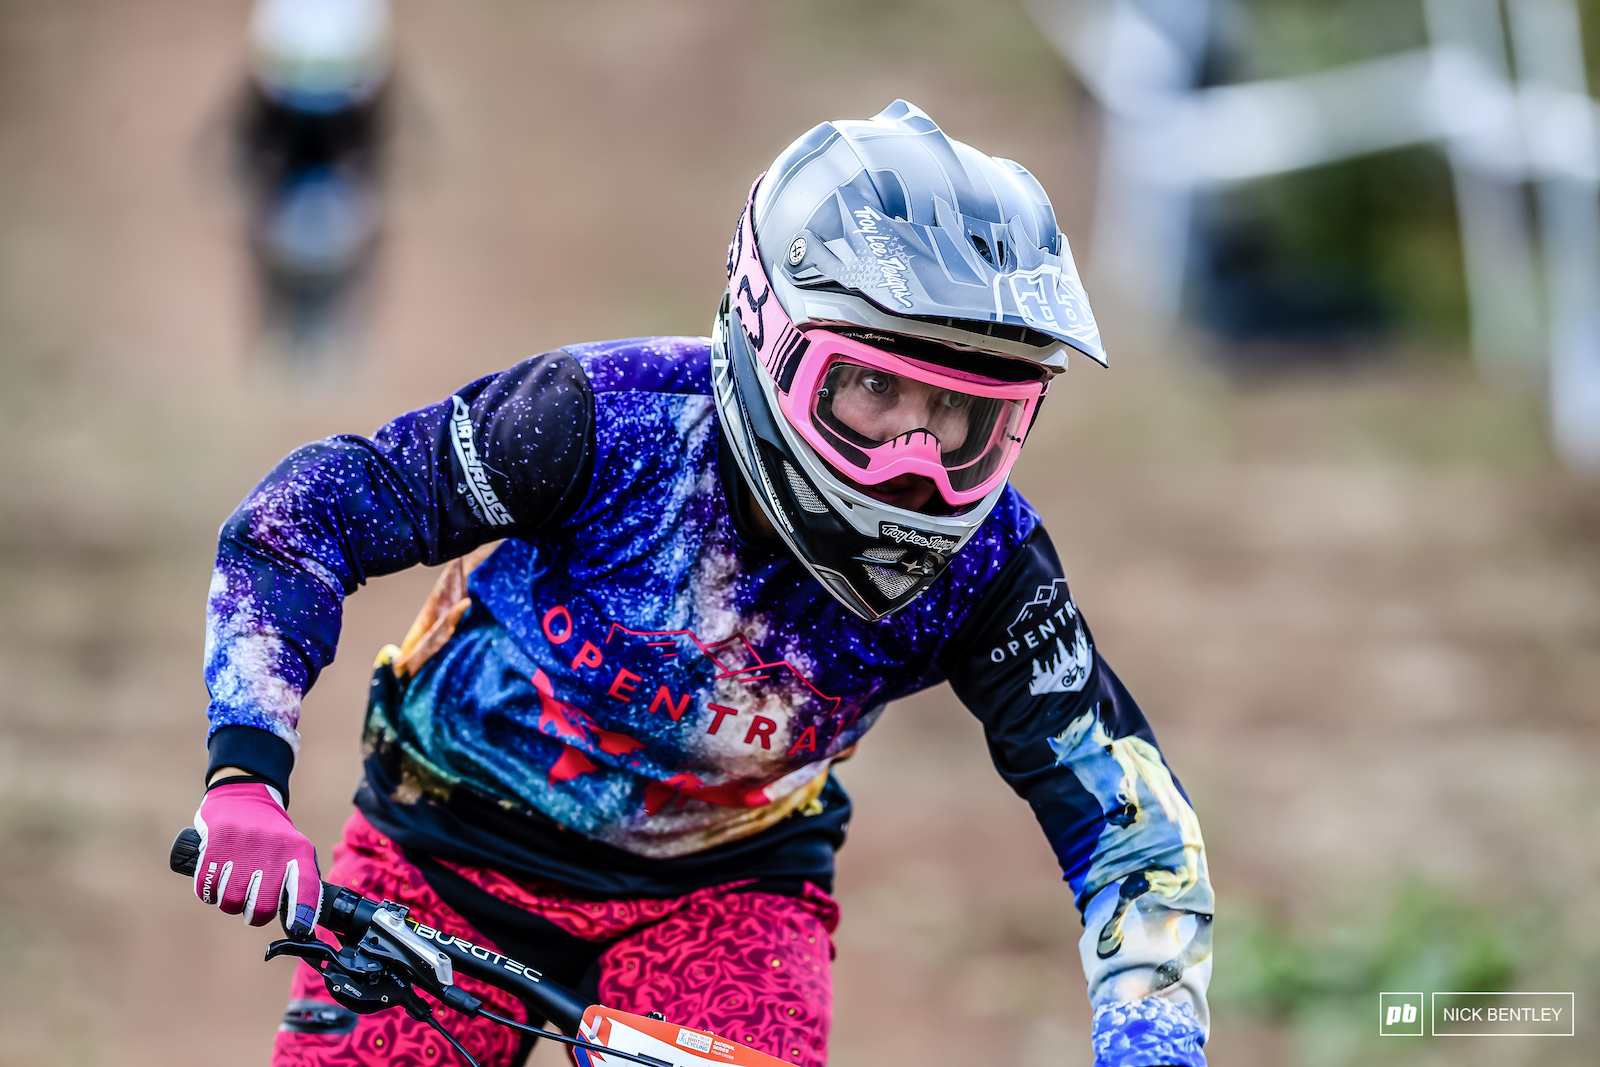 A well deserved Win for Hannah Esscot this weekend in the women s masters field a very deserving national champion